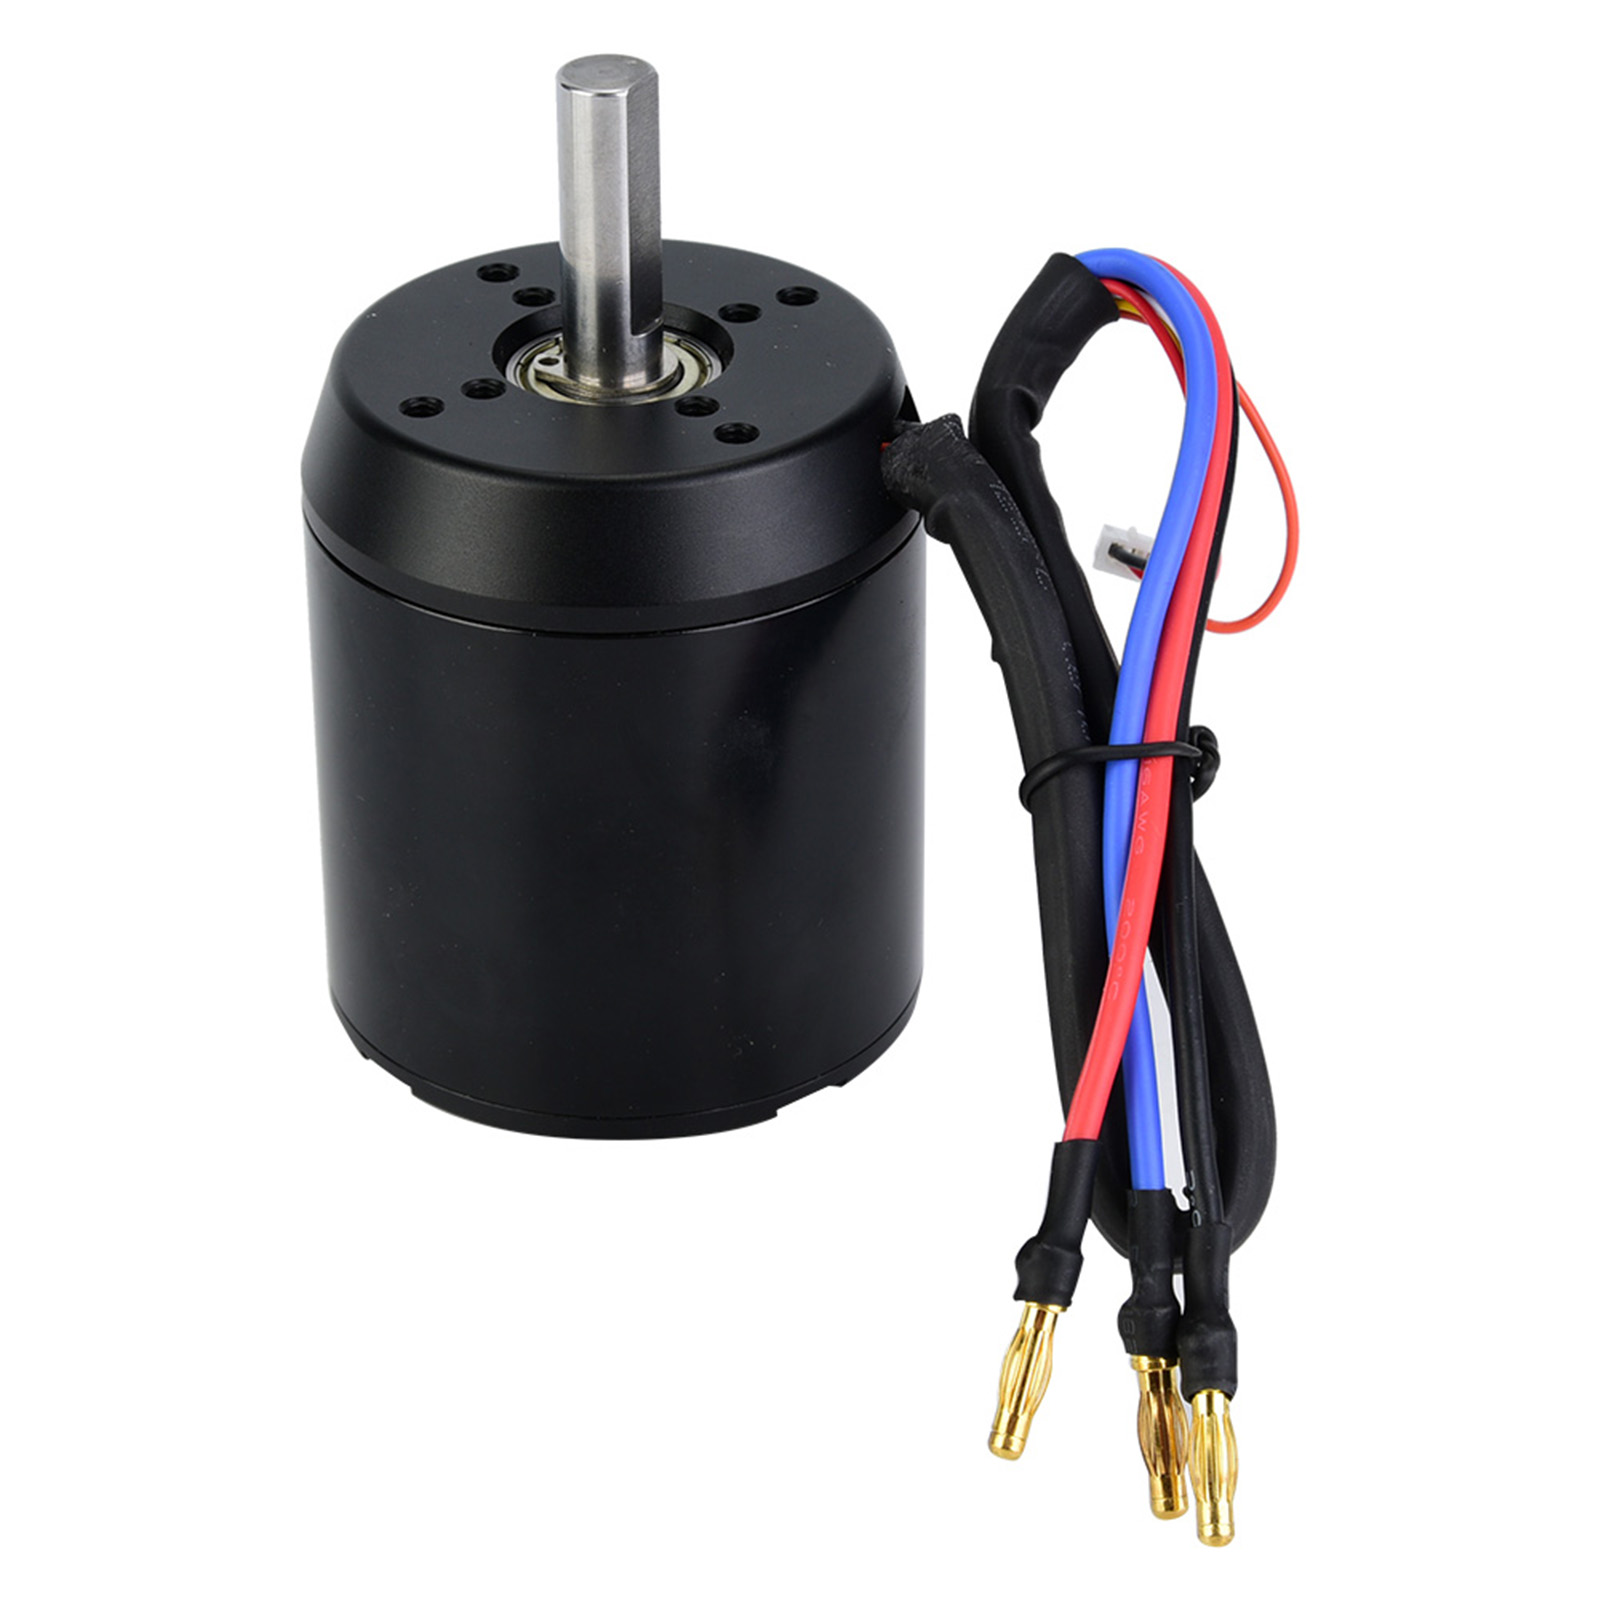 Brushless-Sensorless-6364-200KV-Motor-for-Electric-Balancing-Scooter-Skateboards thumbnail 24